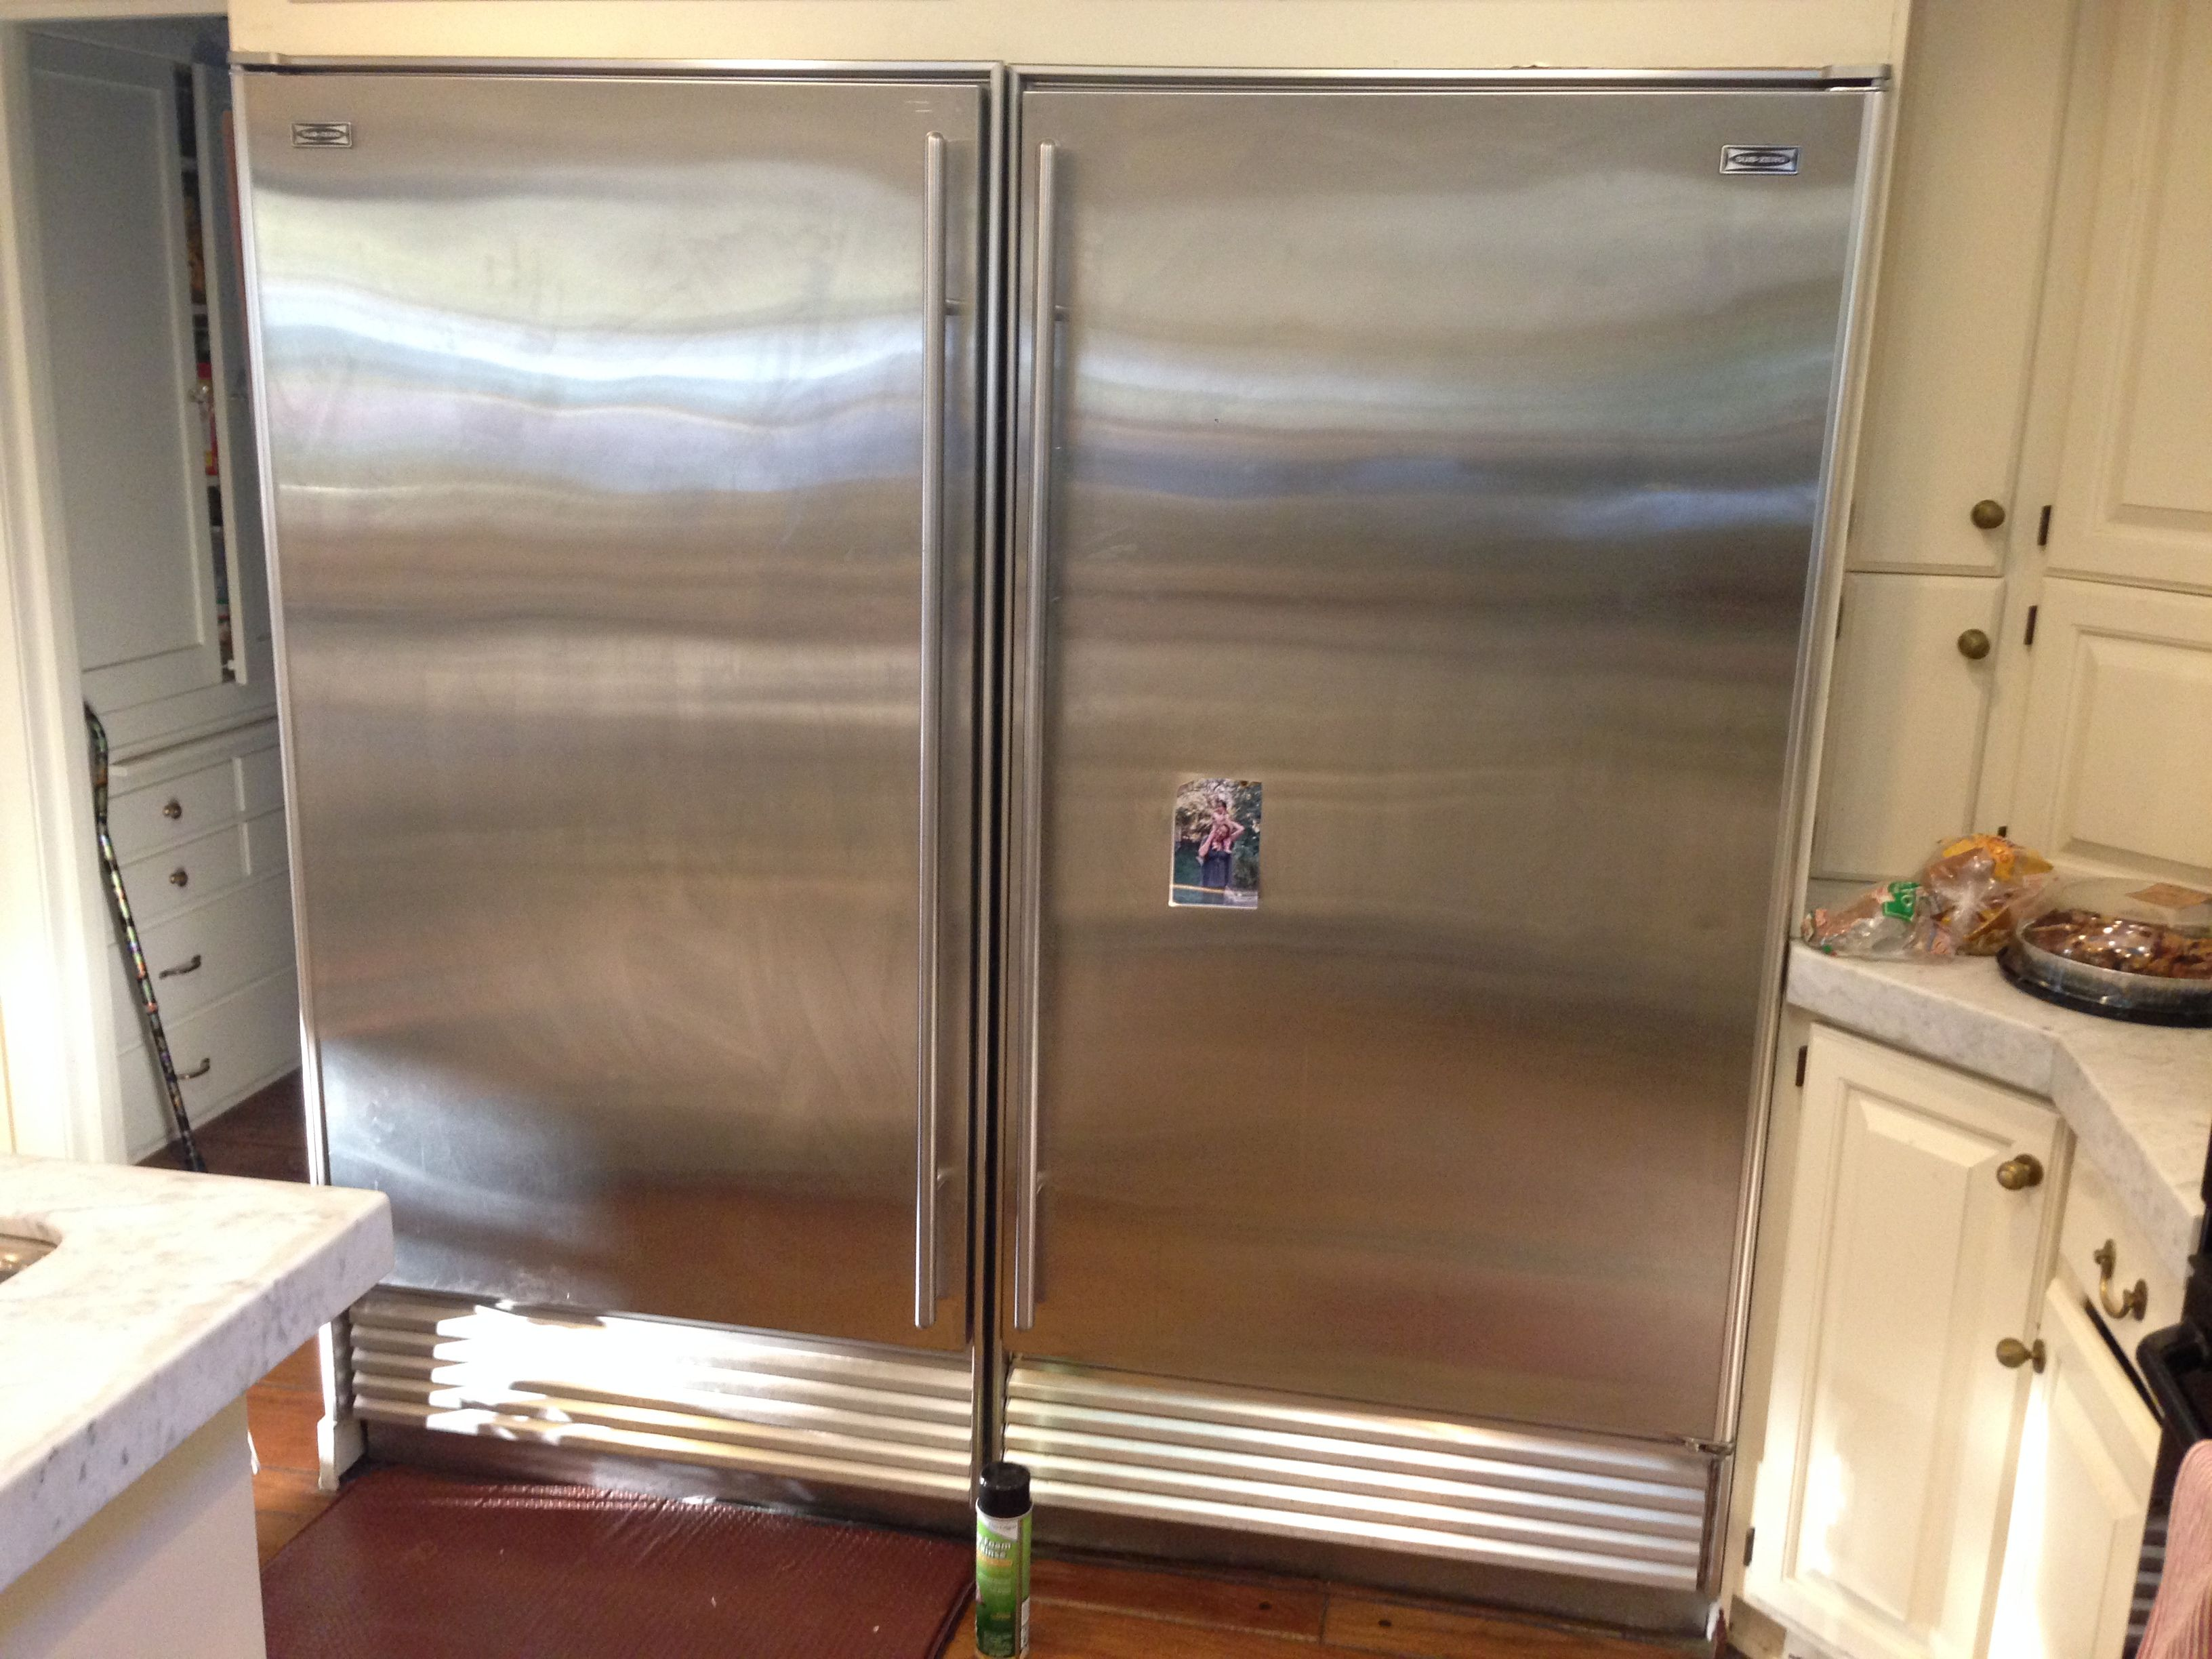 Wolf Oven Repair Service Refrigerator Freezer Wolf Oven Oven